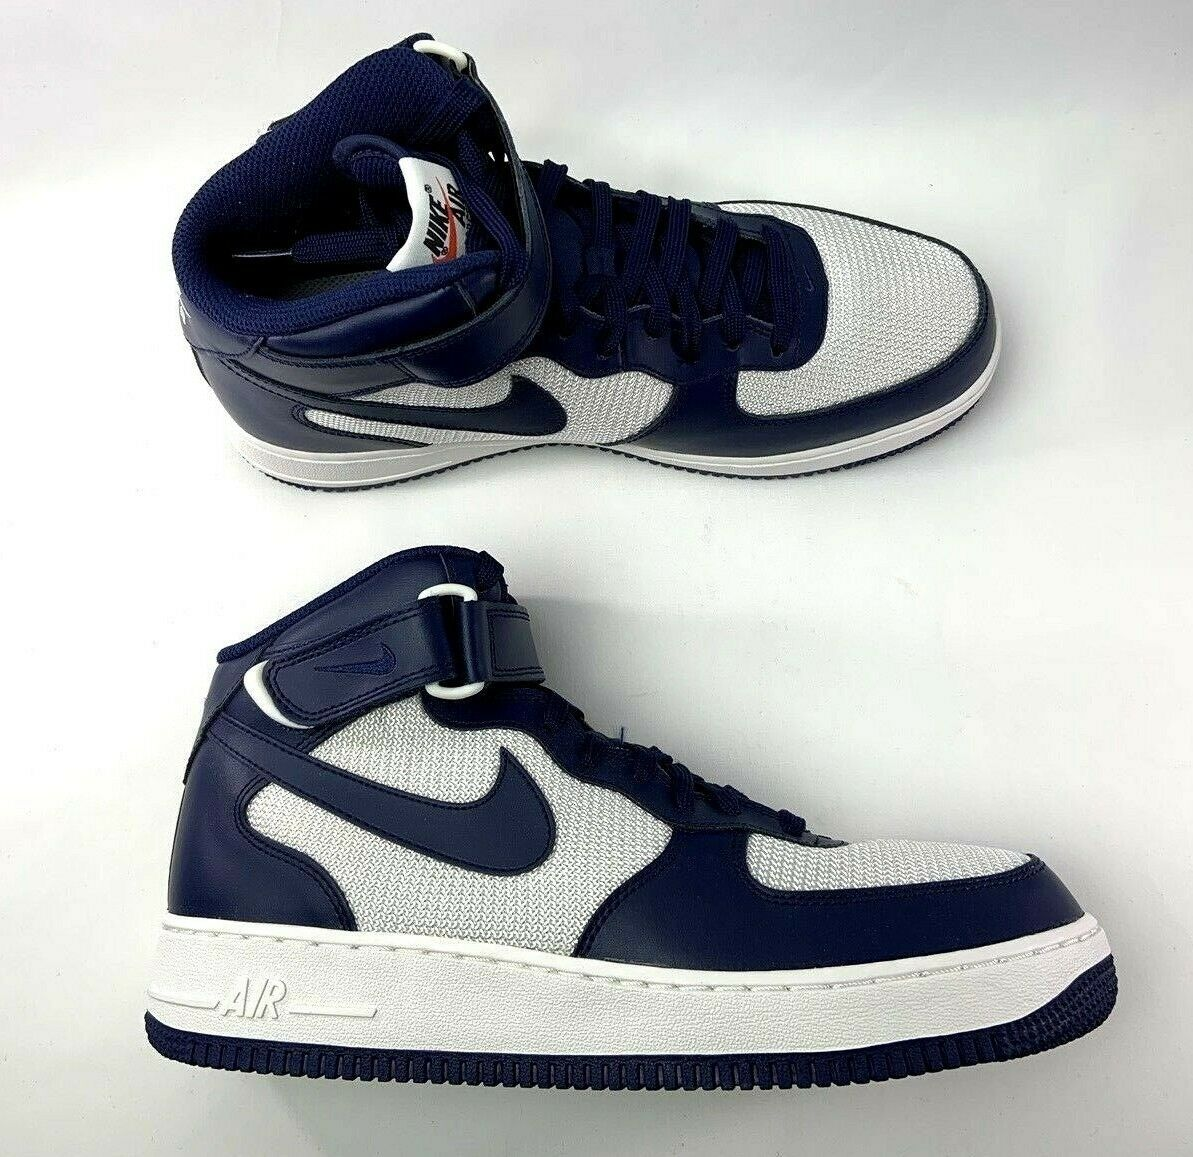 White blueee Binary 07 Mid 1 Force Air Nike color shoes NEW